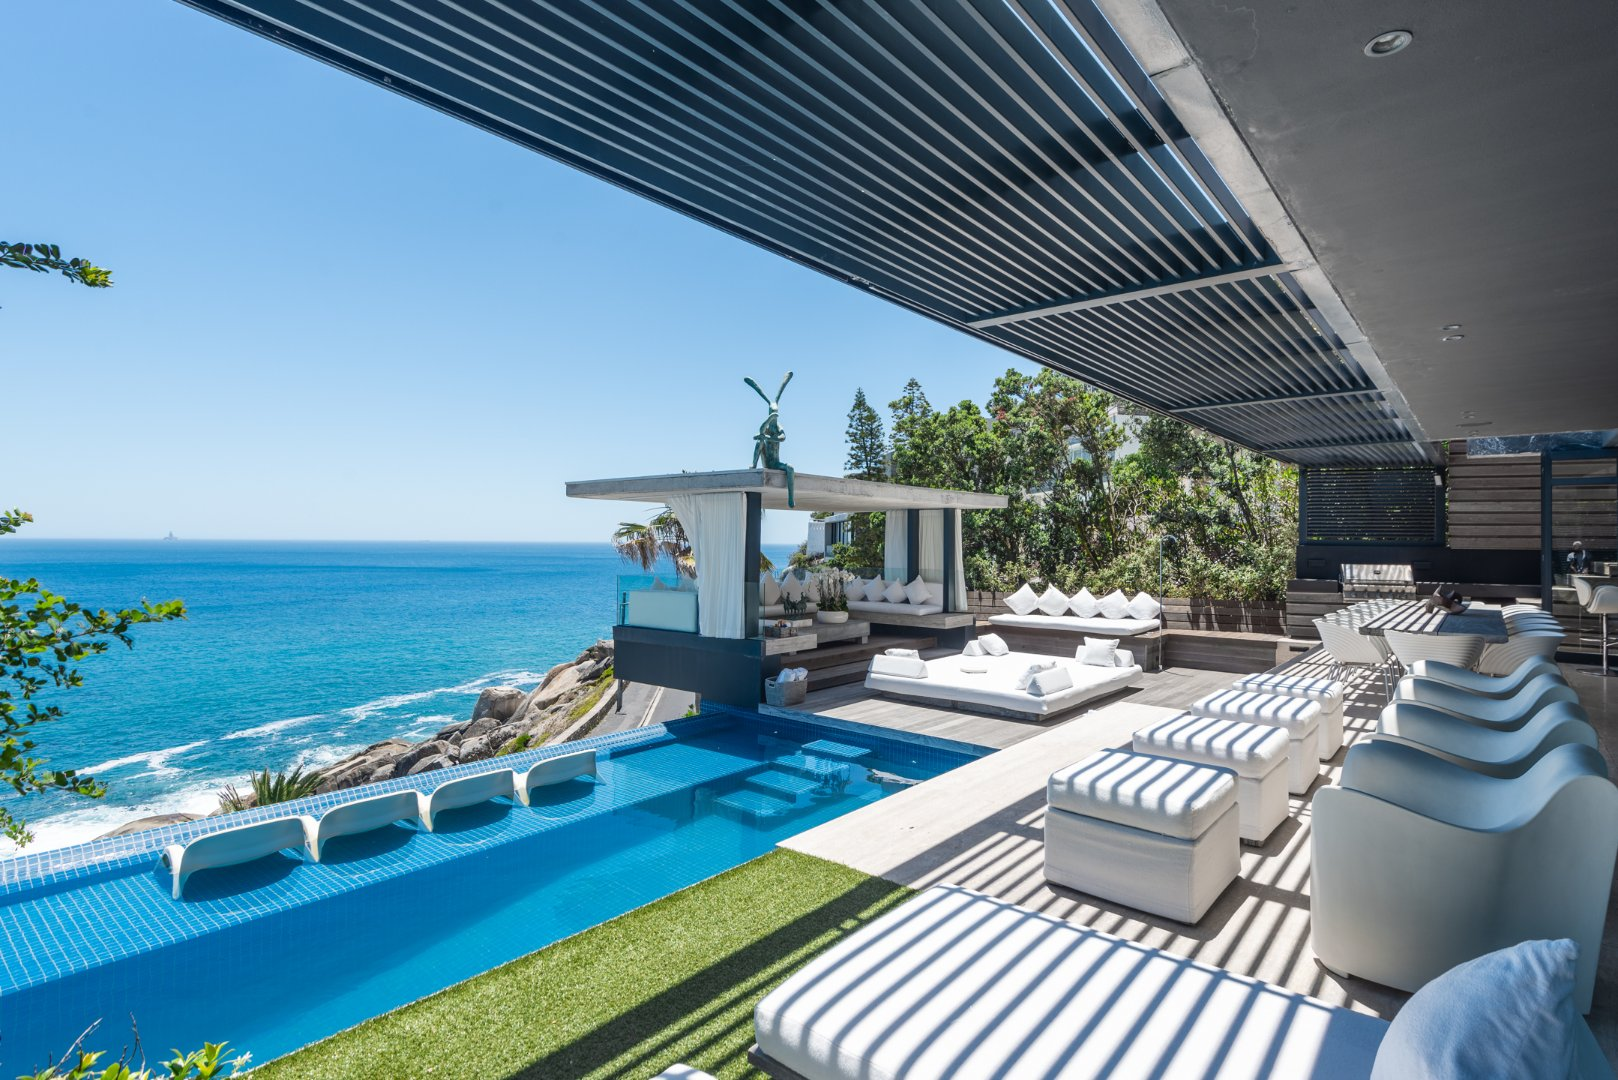 5 Bedroom House with Panoramic Atlantic Views for Sale